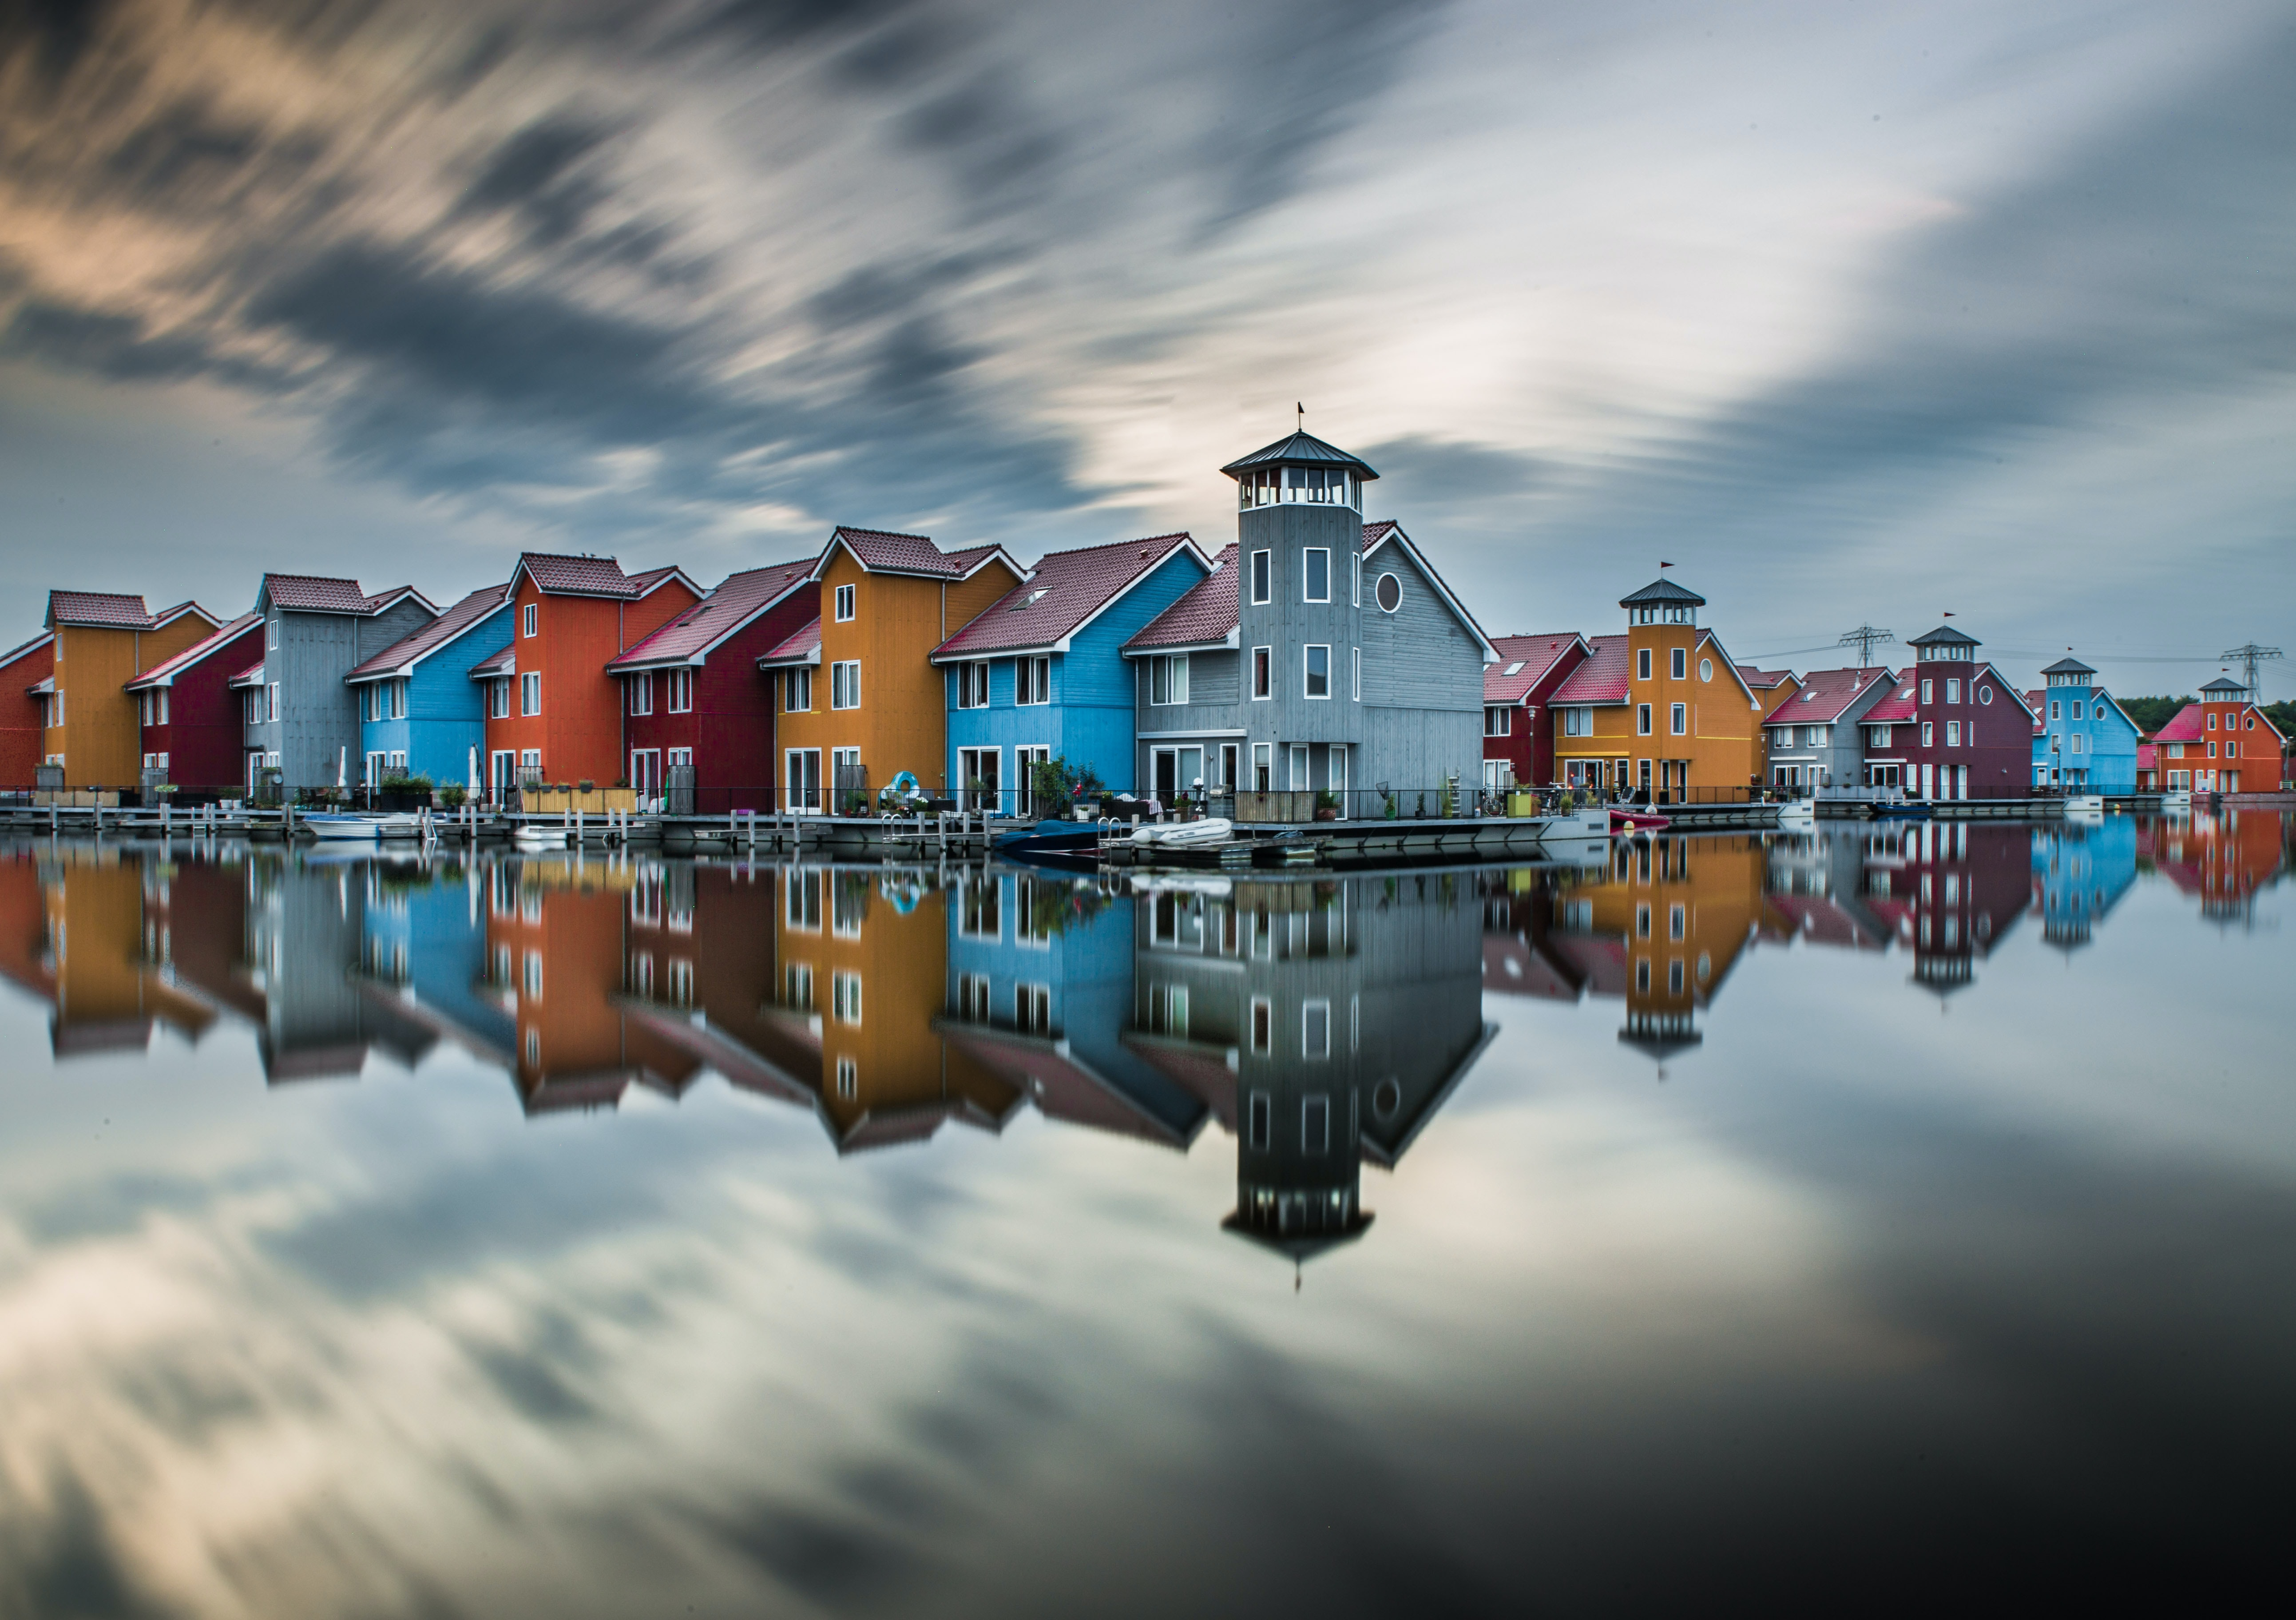 houses reflecting on body of water